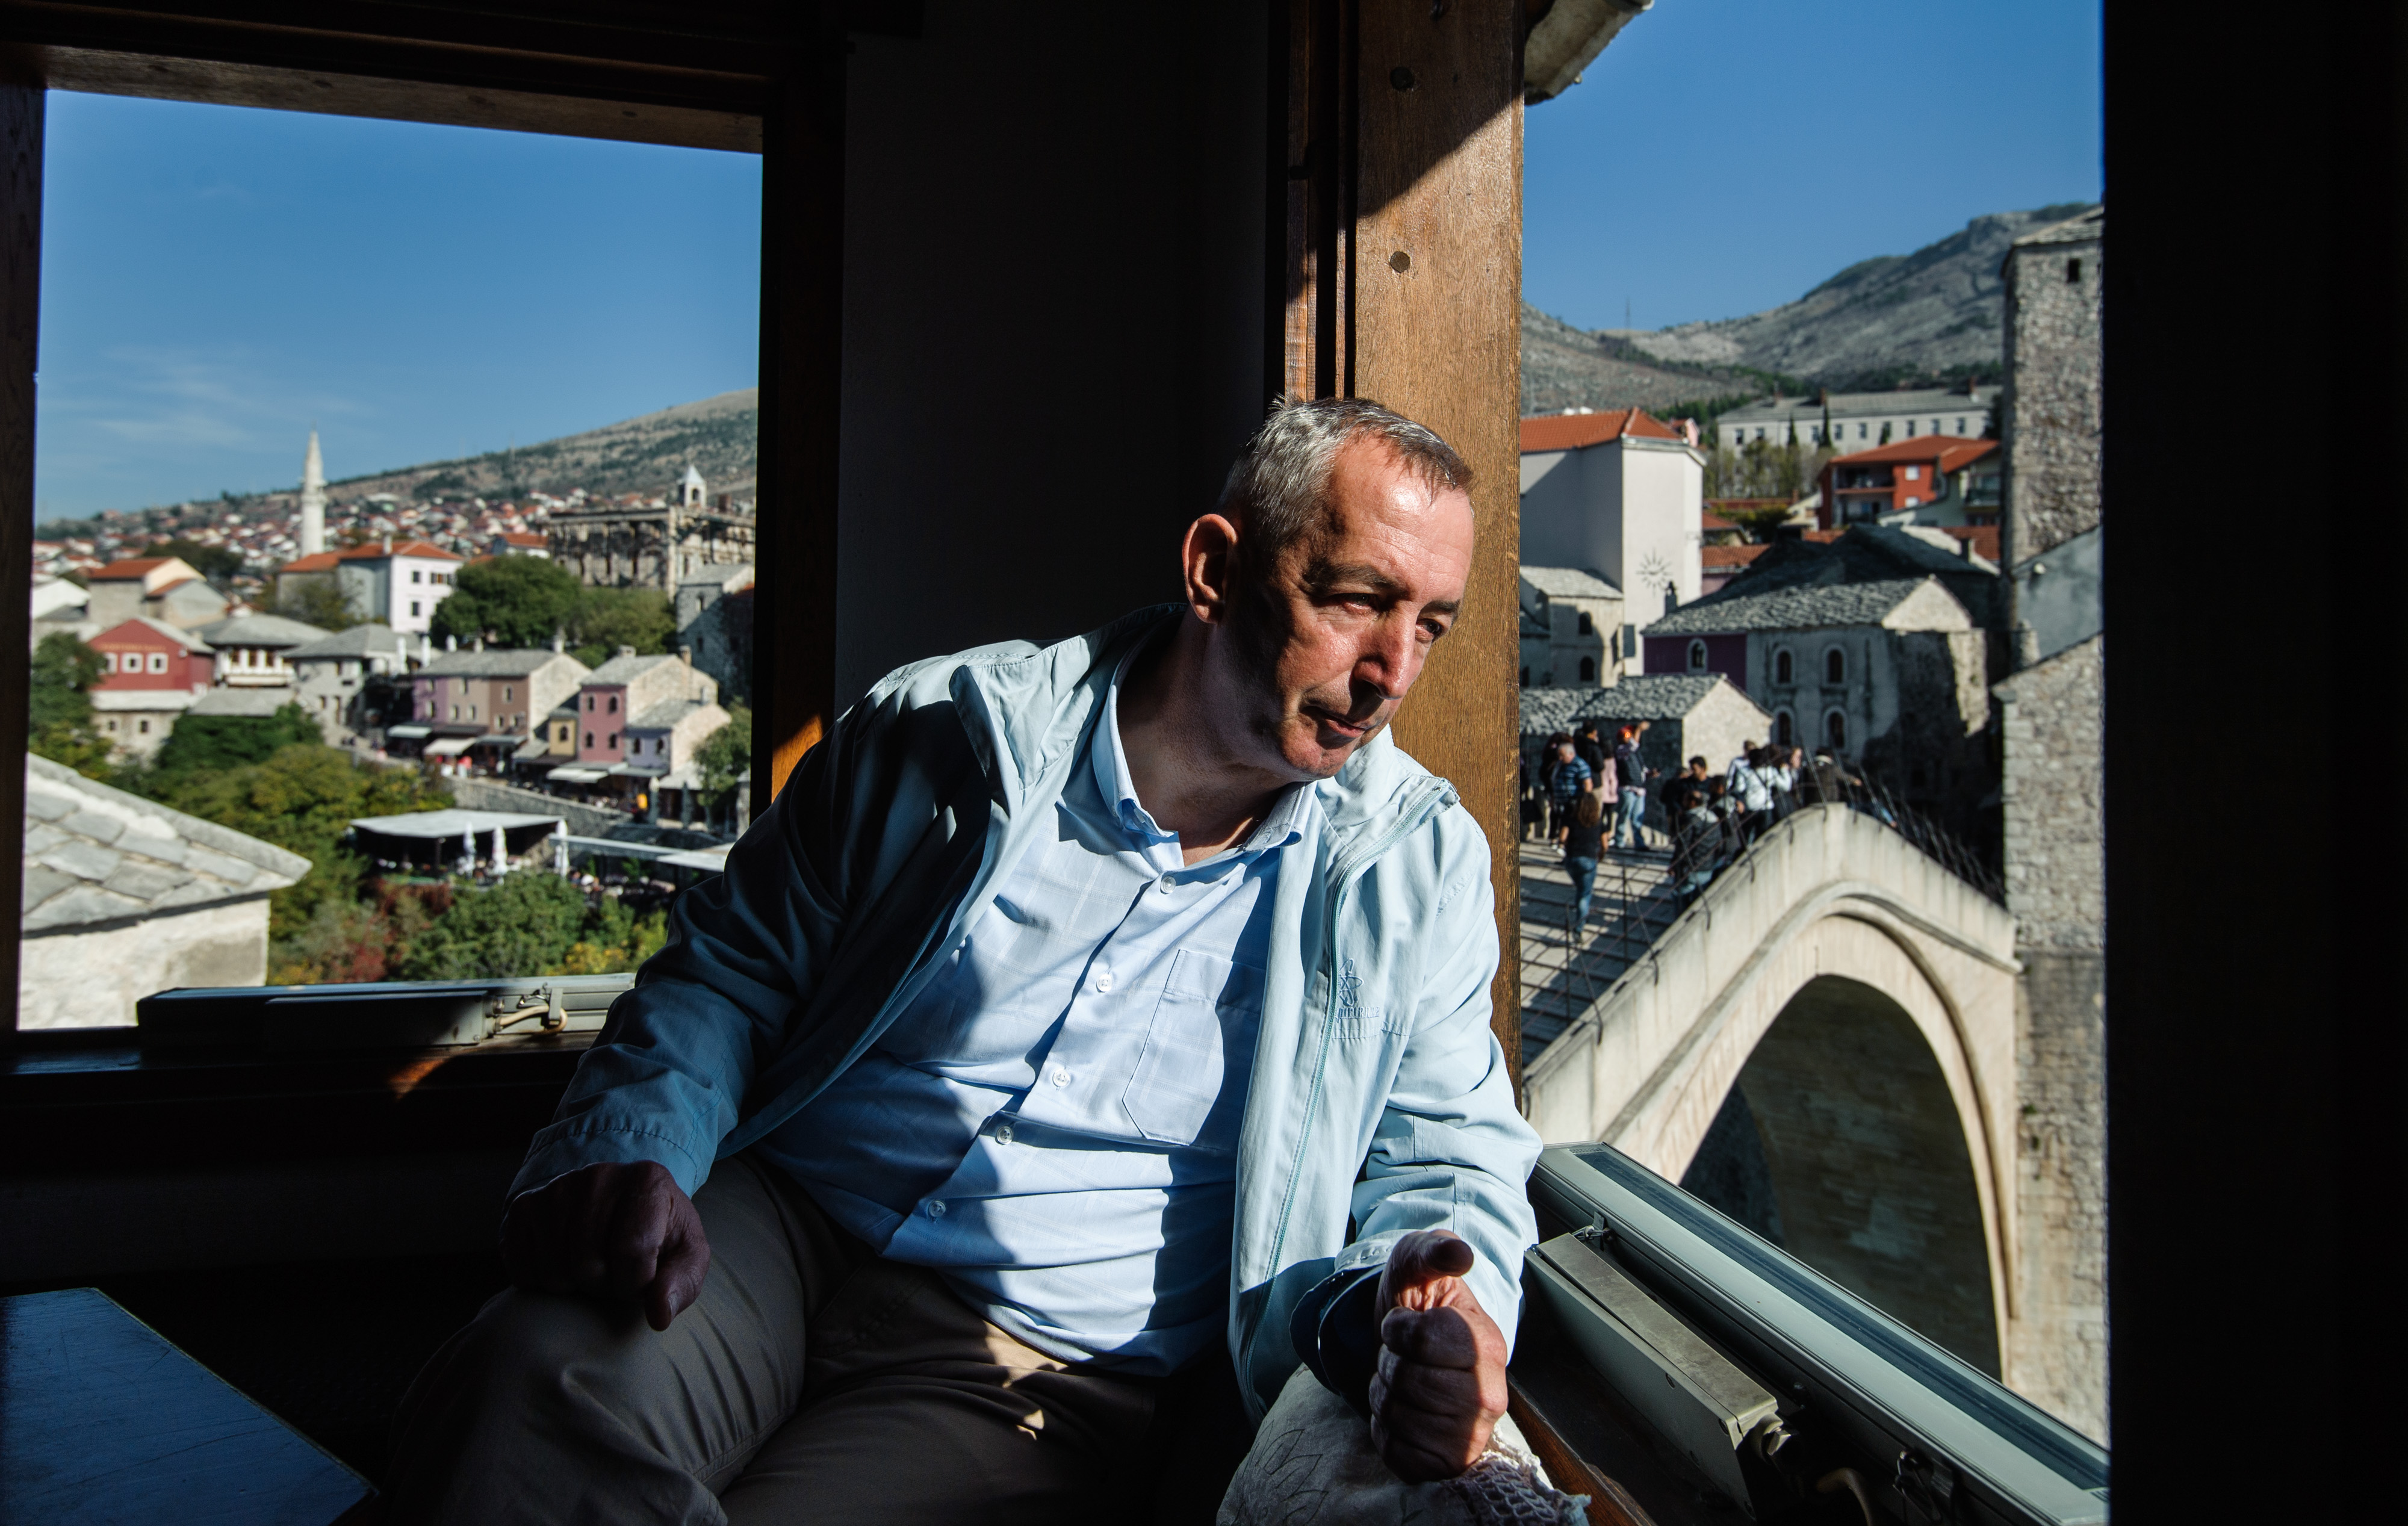 Hadis Brajevic posed in Cardak, over Old Bridge in Mostar